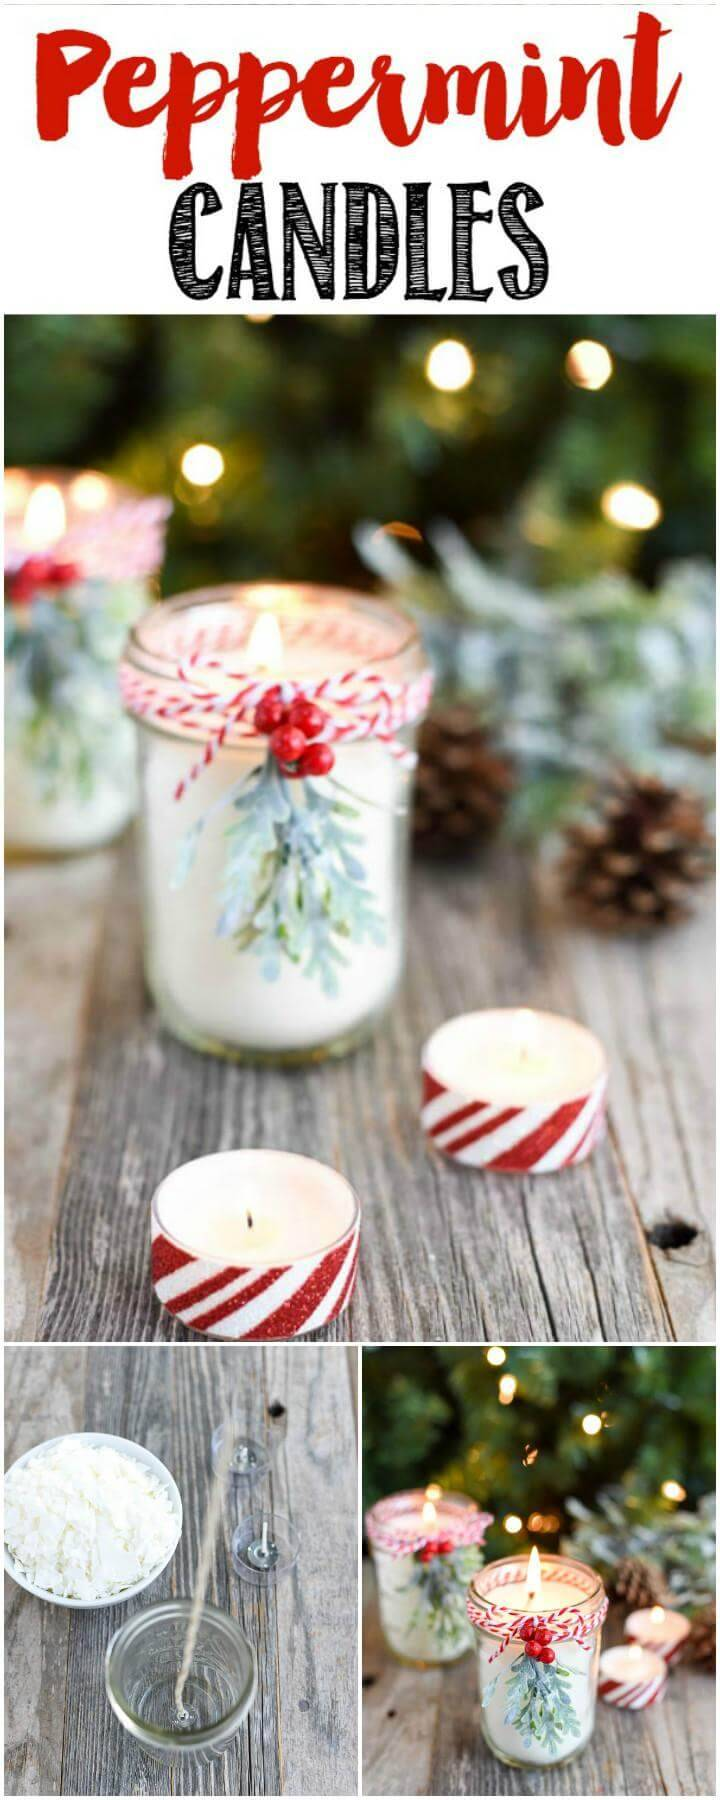 DIY Homemade Peppermint Mason Jar Candles